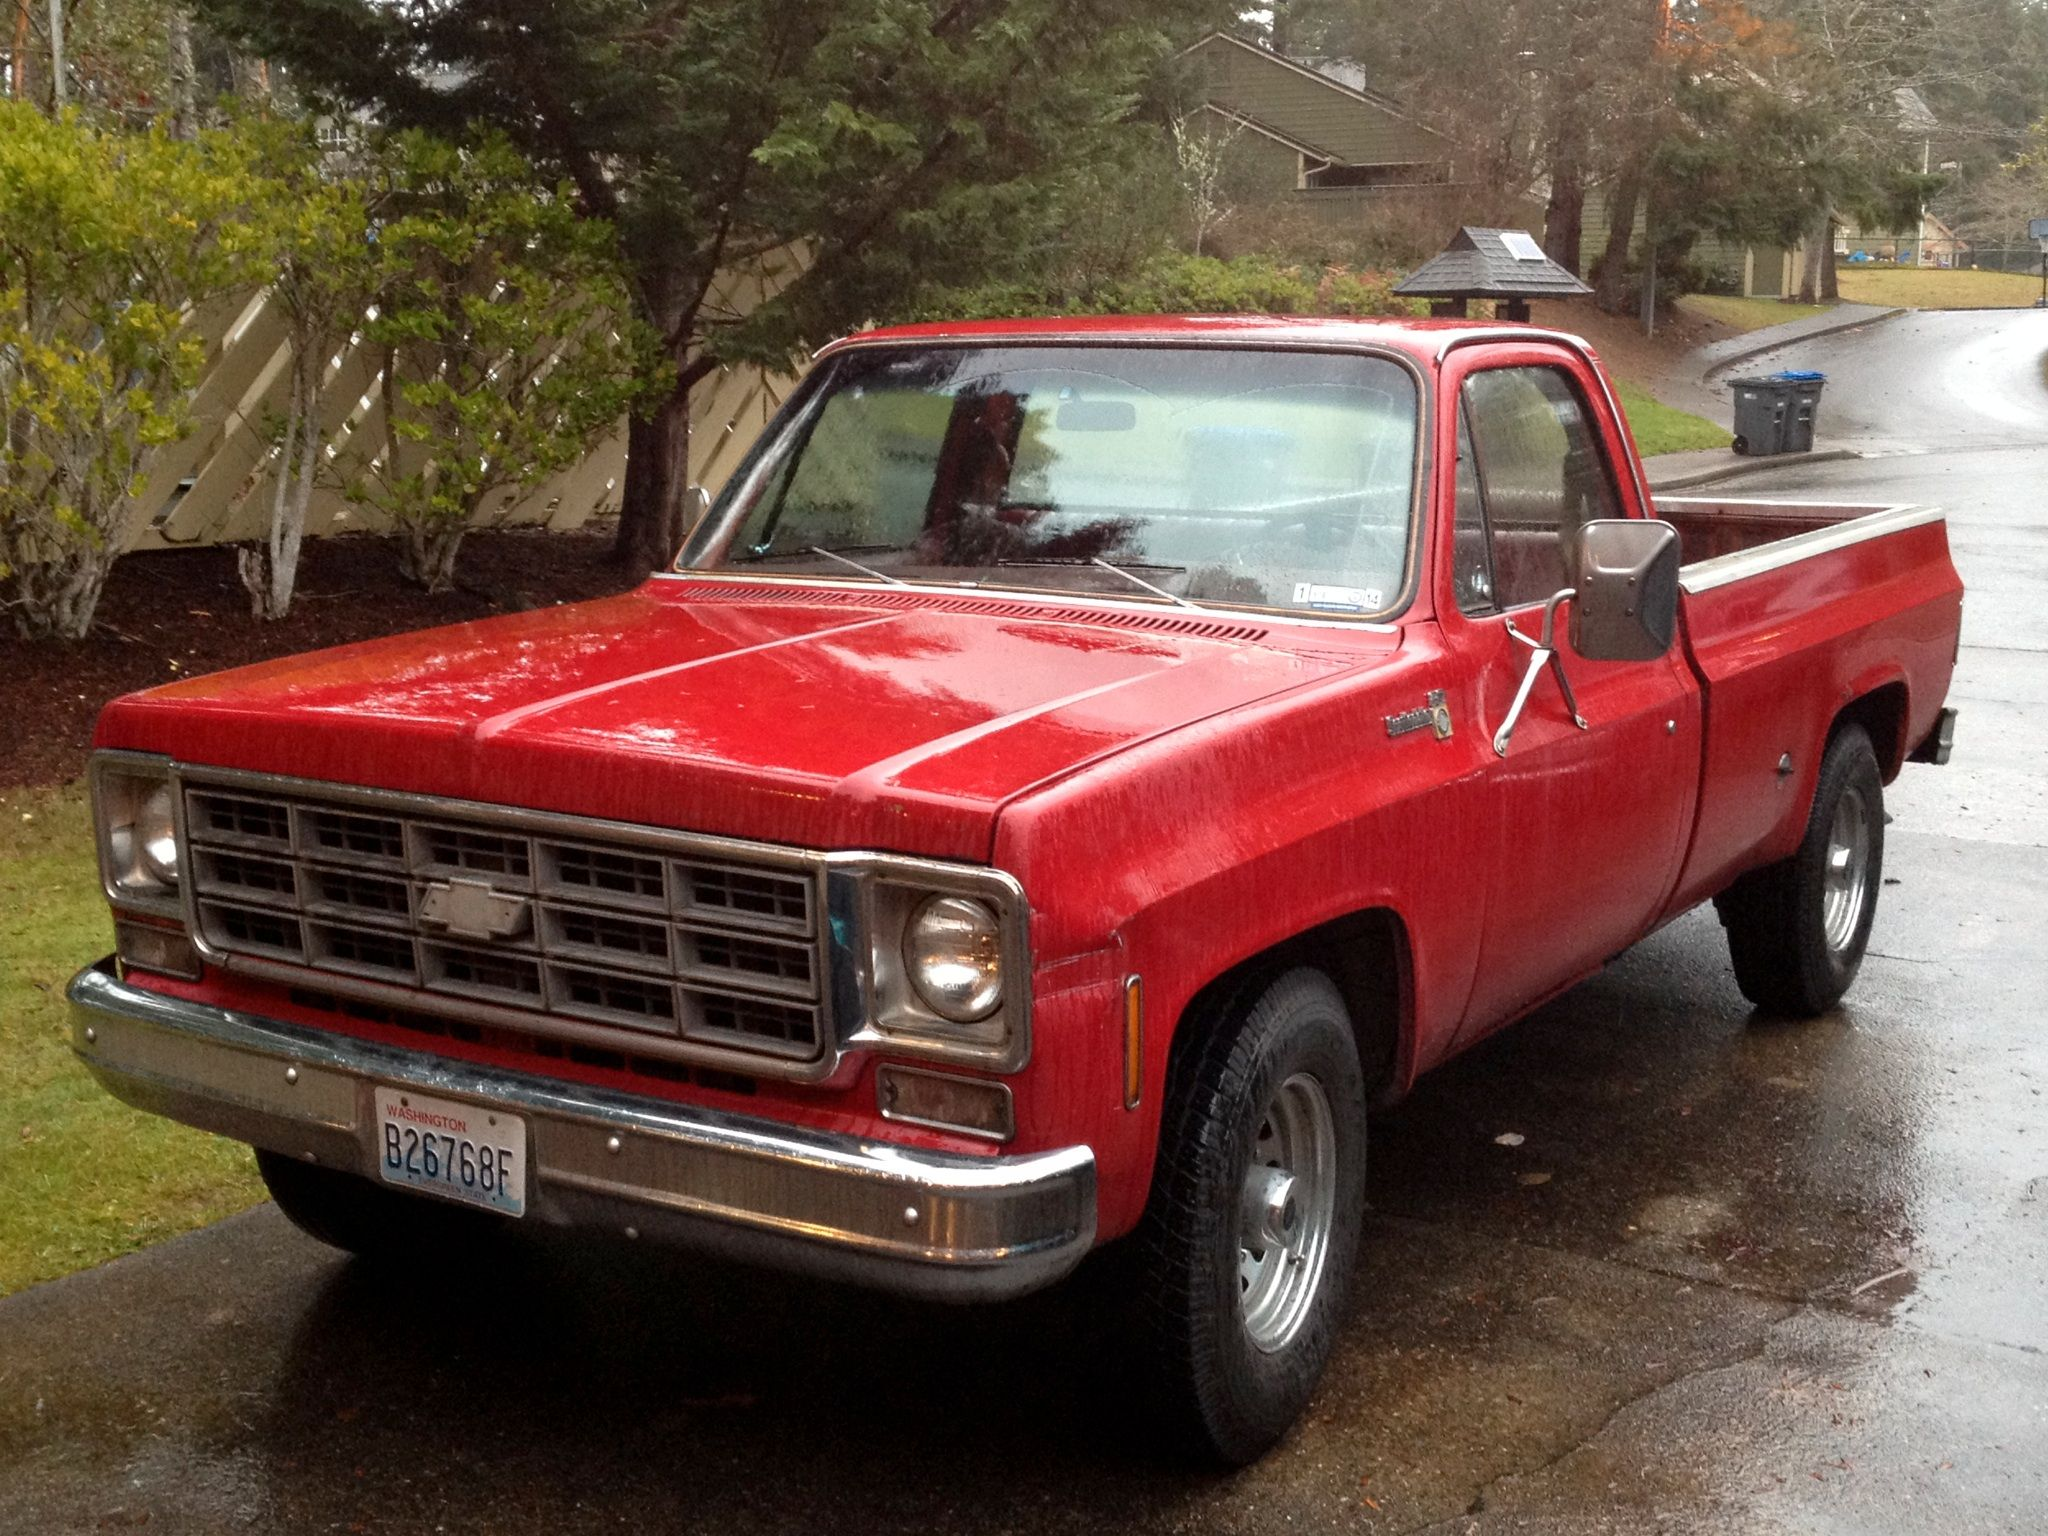 1969 Chevy Truck For Sale >> My 78 Chevy C20 | Chevy Trucks! | Pinterest